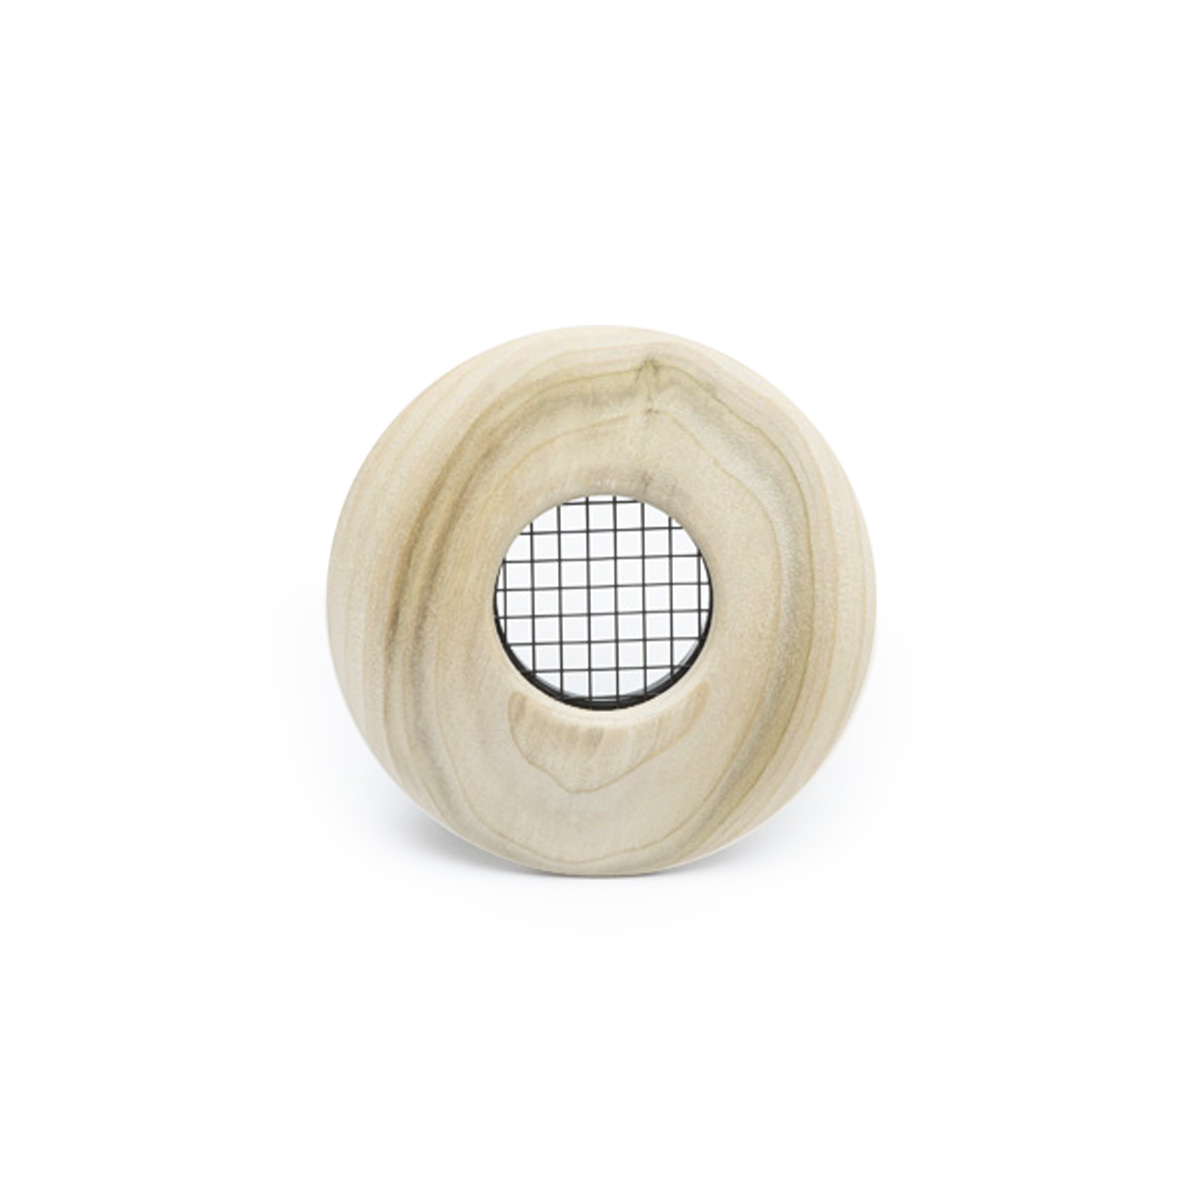 "Round Supply Outlet, 2"", Poplar wood, TFS, 6/bx"